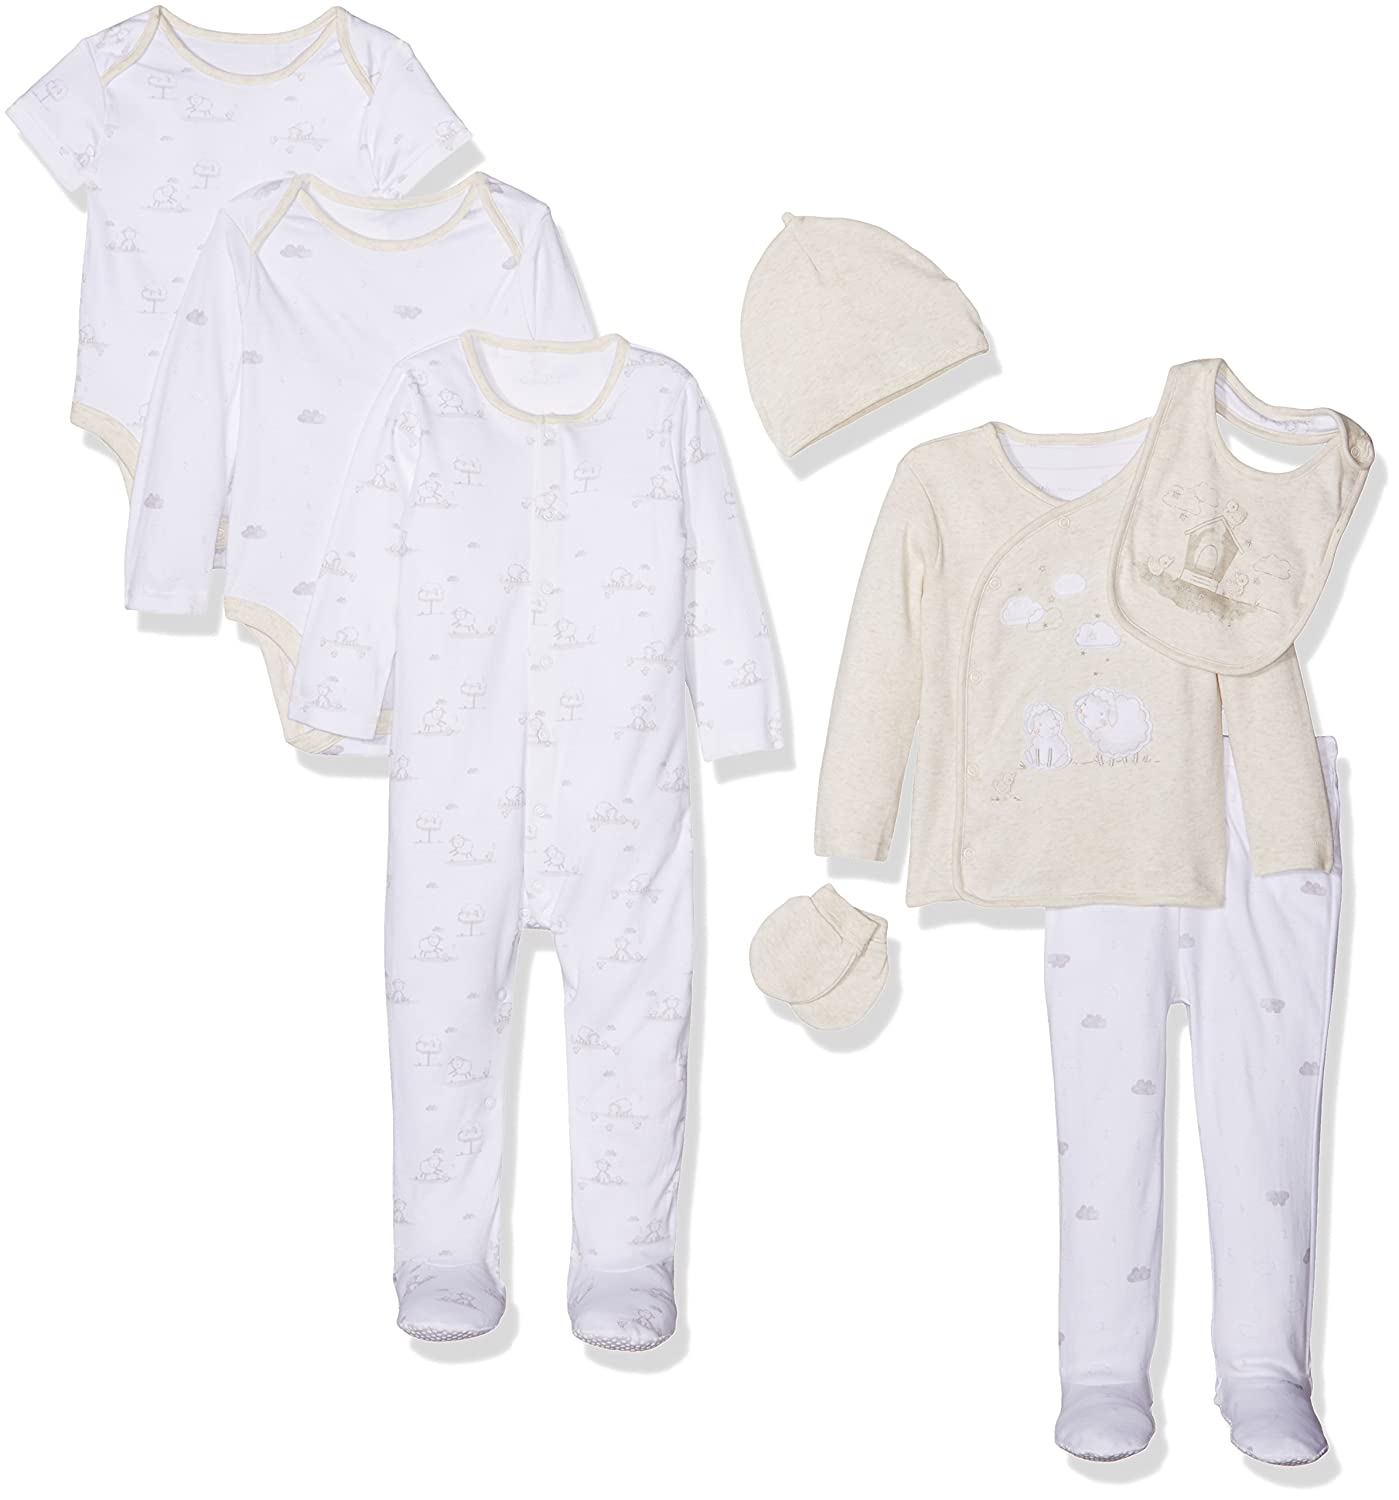 Mothercare Baby 8-Piece Set